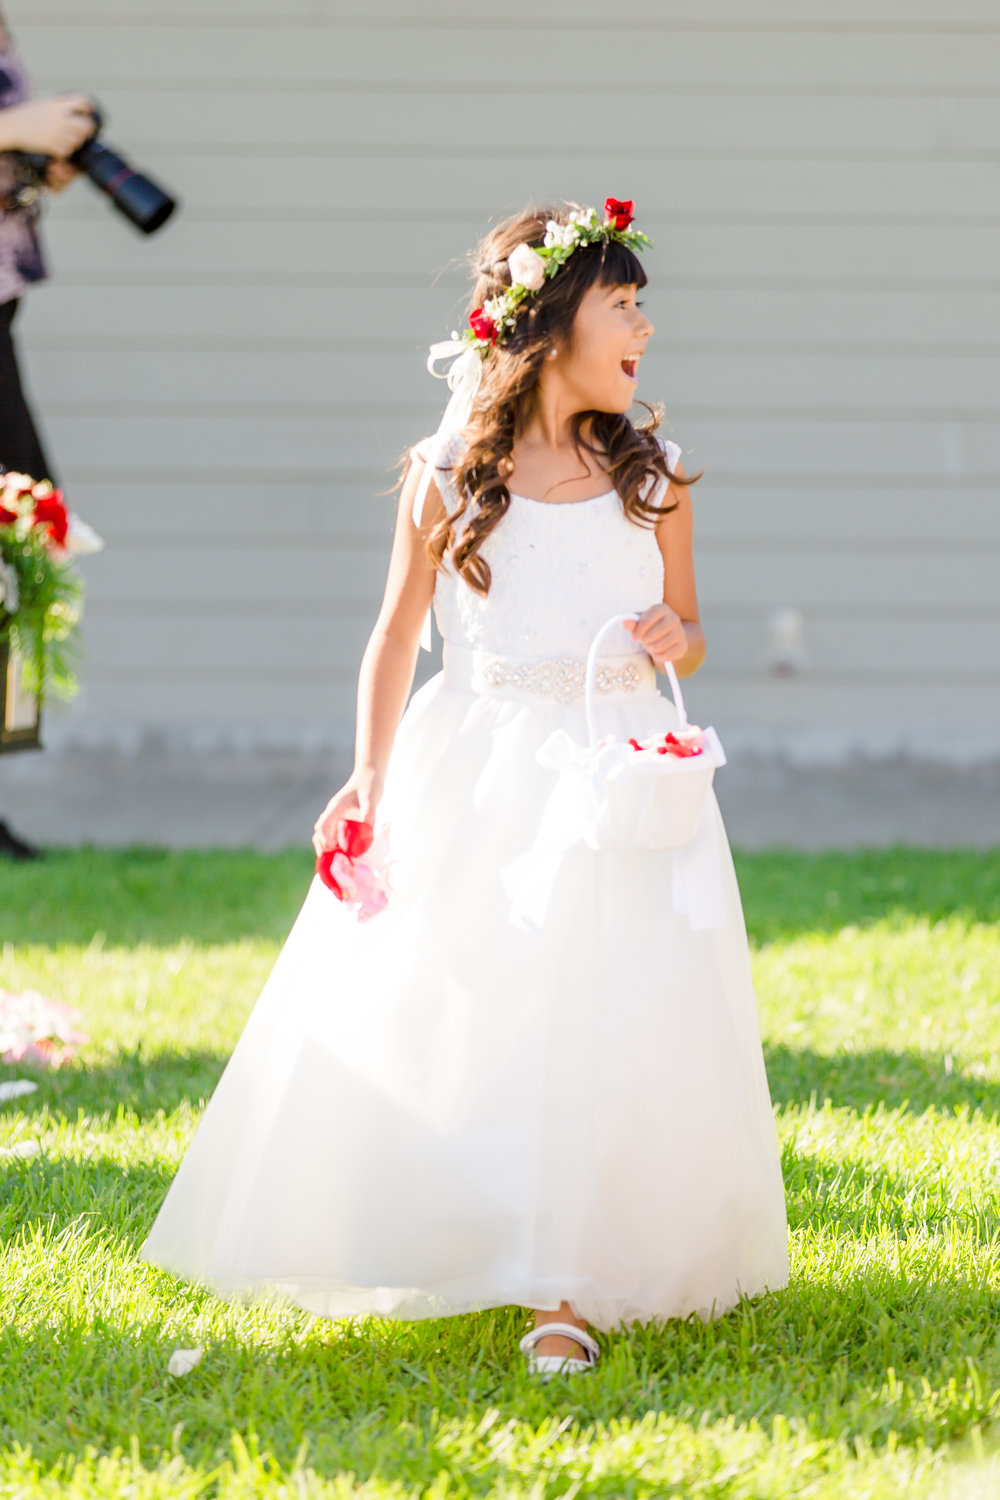 Becca_Mark_Southwestern_Yacht_Club_Wedding_292.jpg